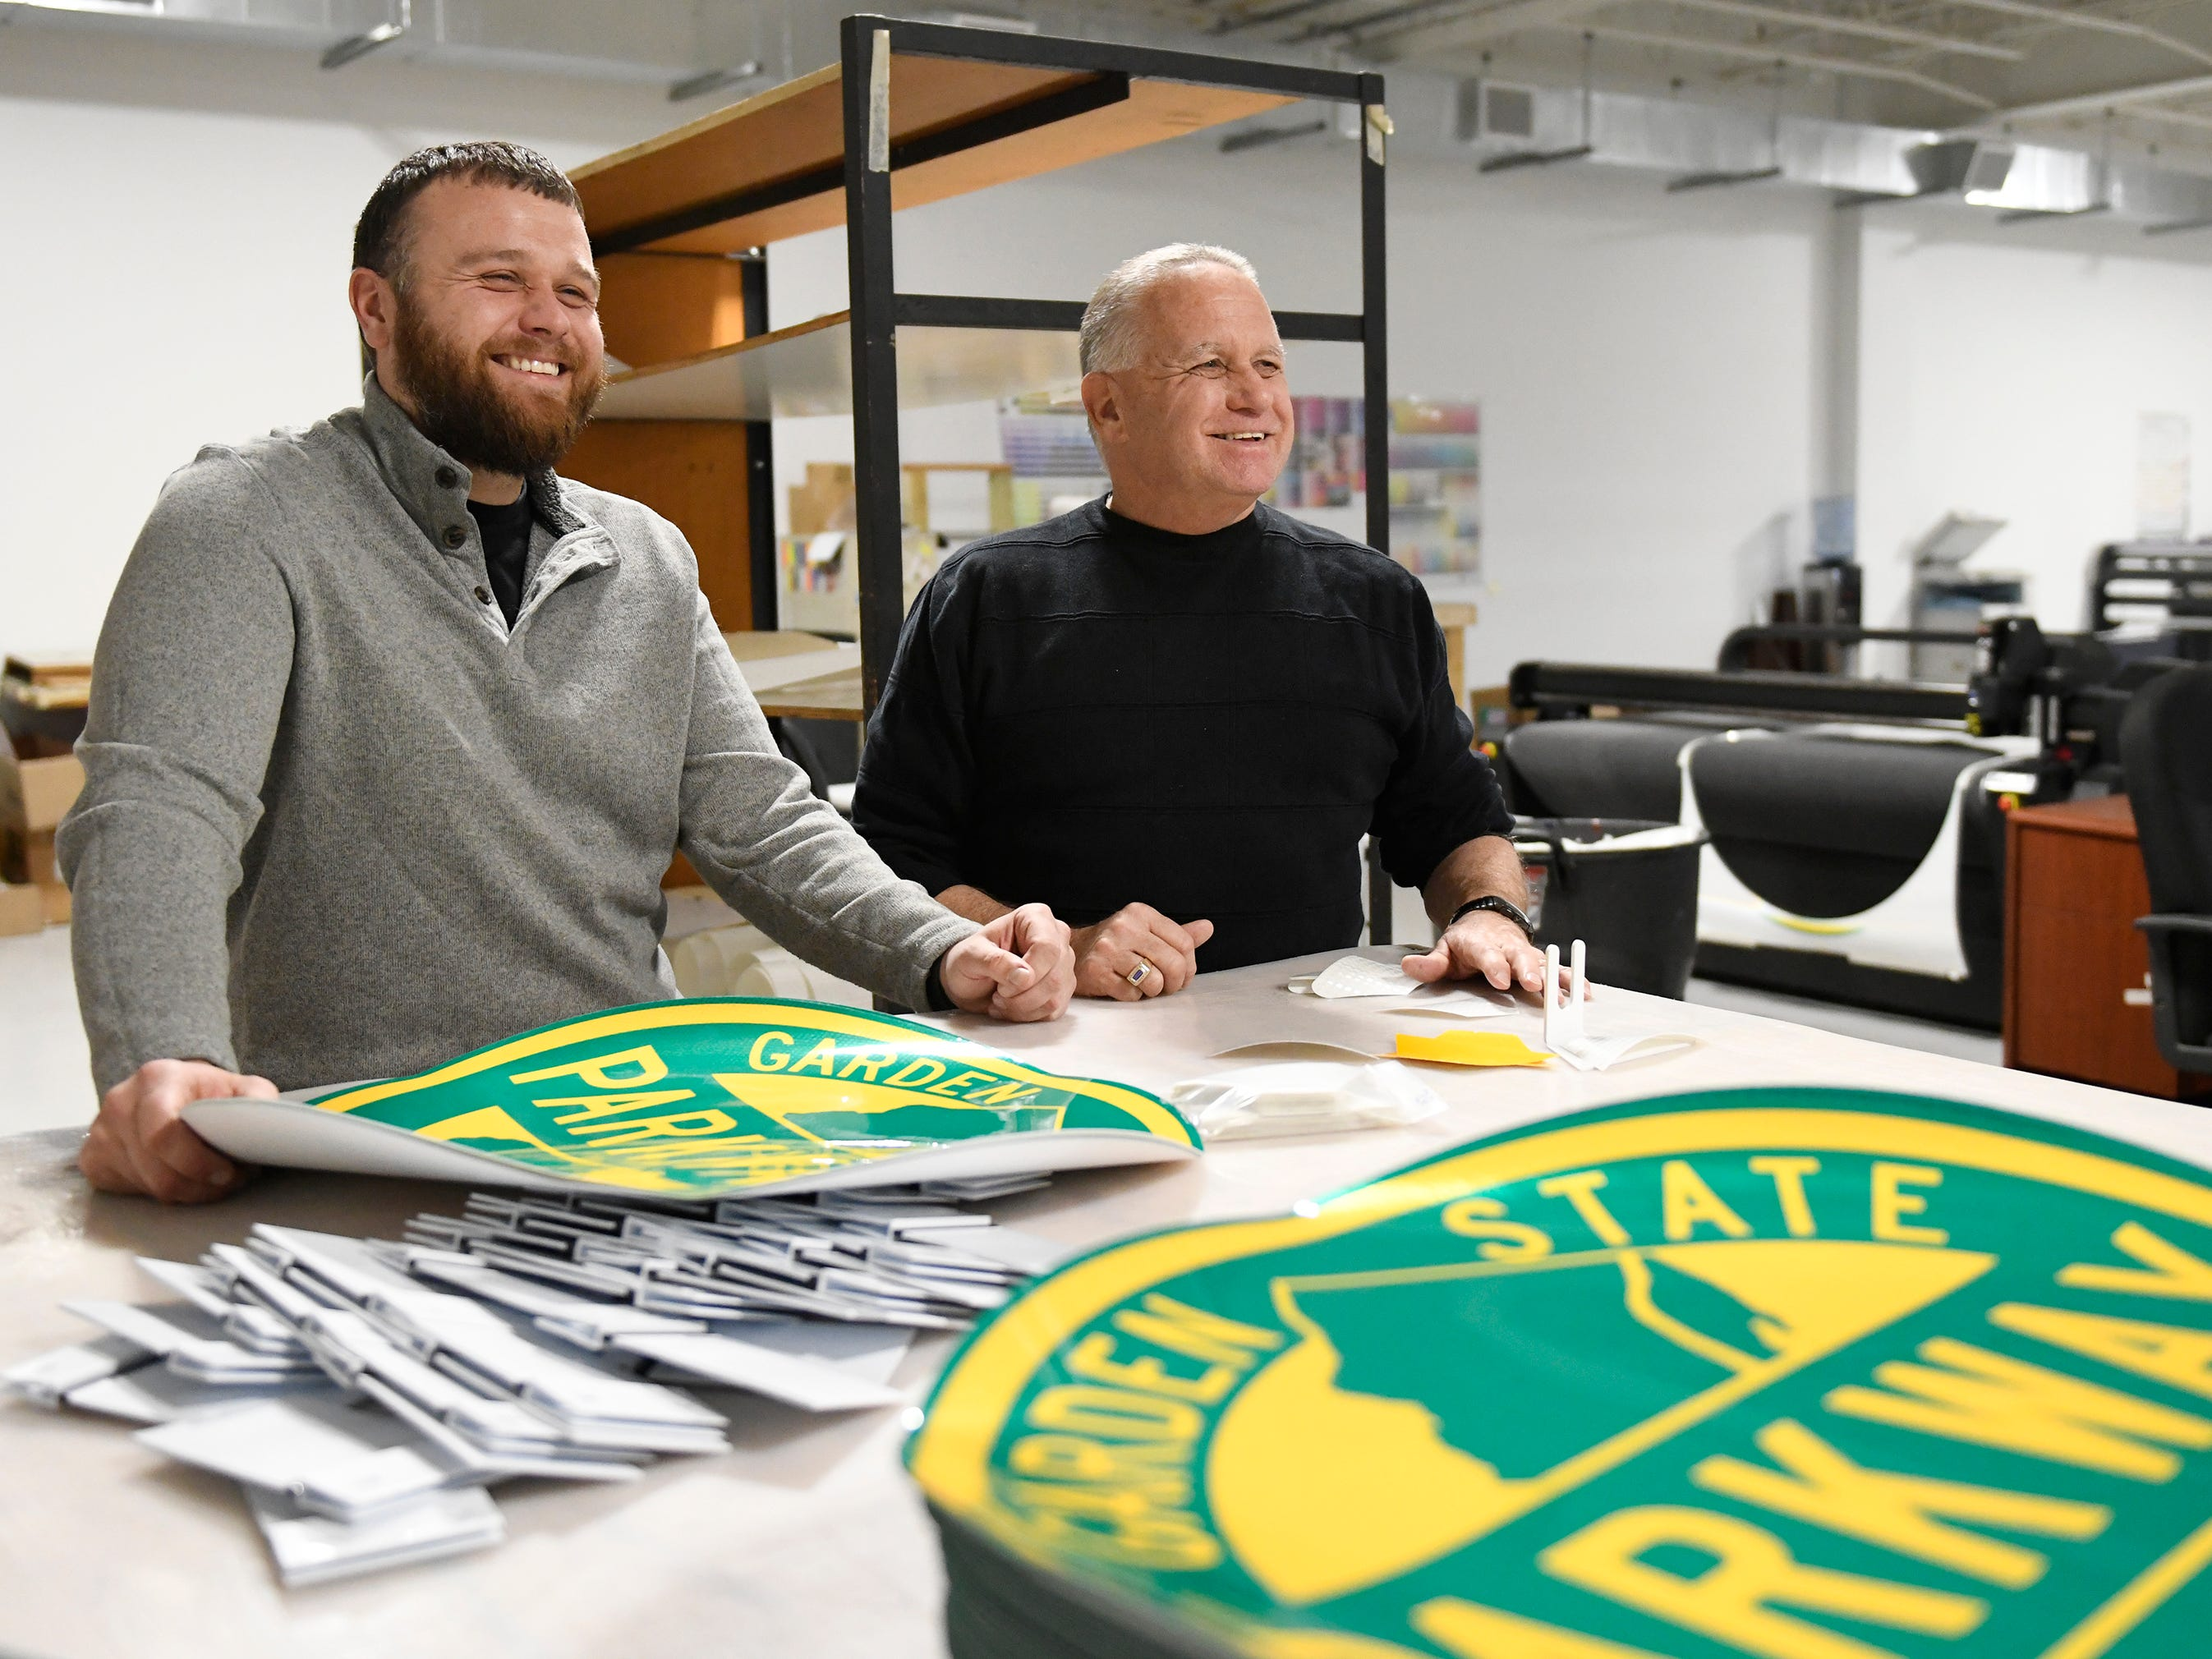 Robert Green, operations manager at Garden State Highway Products Inc., left, stands next to his father Bob who started the company with his wife Sharon in 1987.